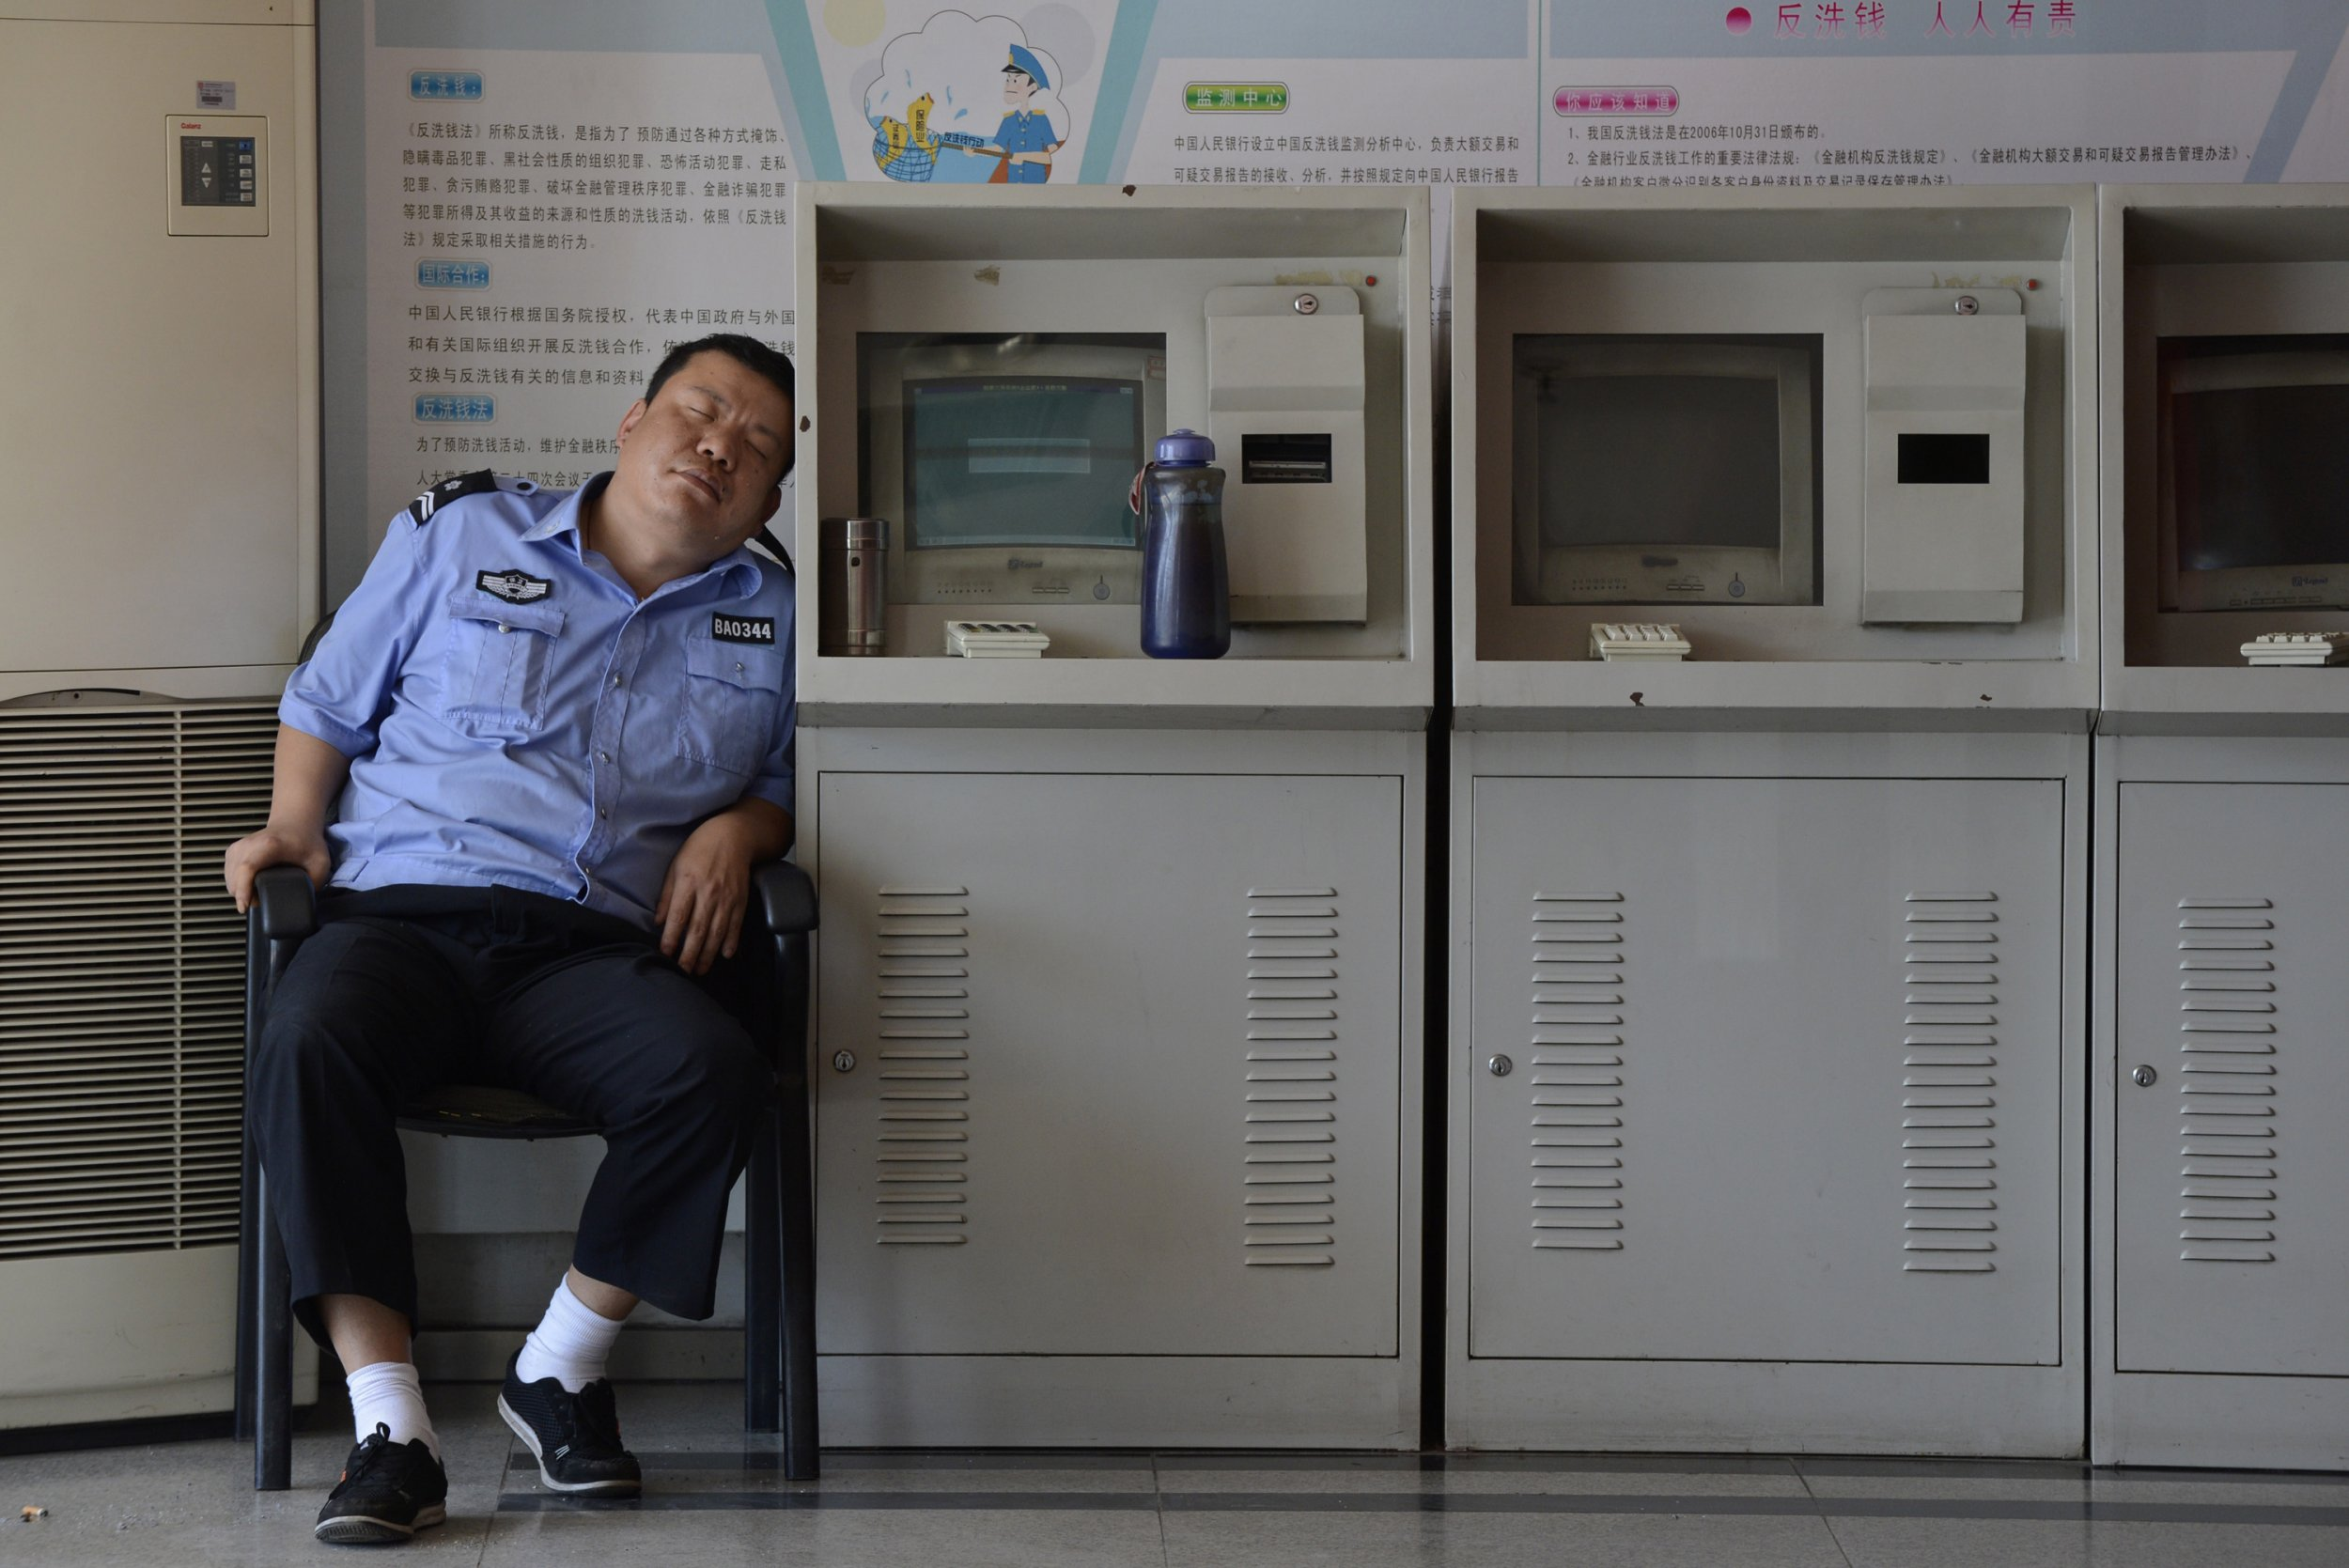 Sleep Deprivation Can Cost Companies Billions And Make